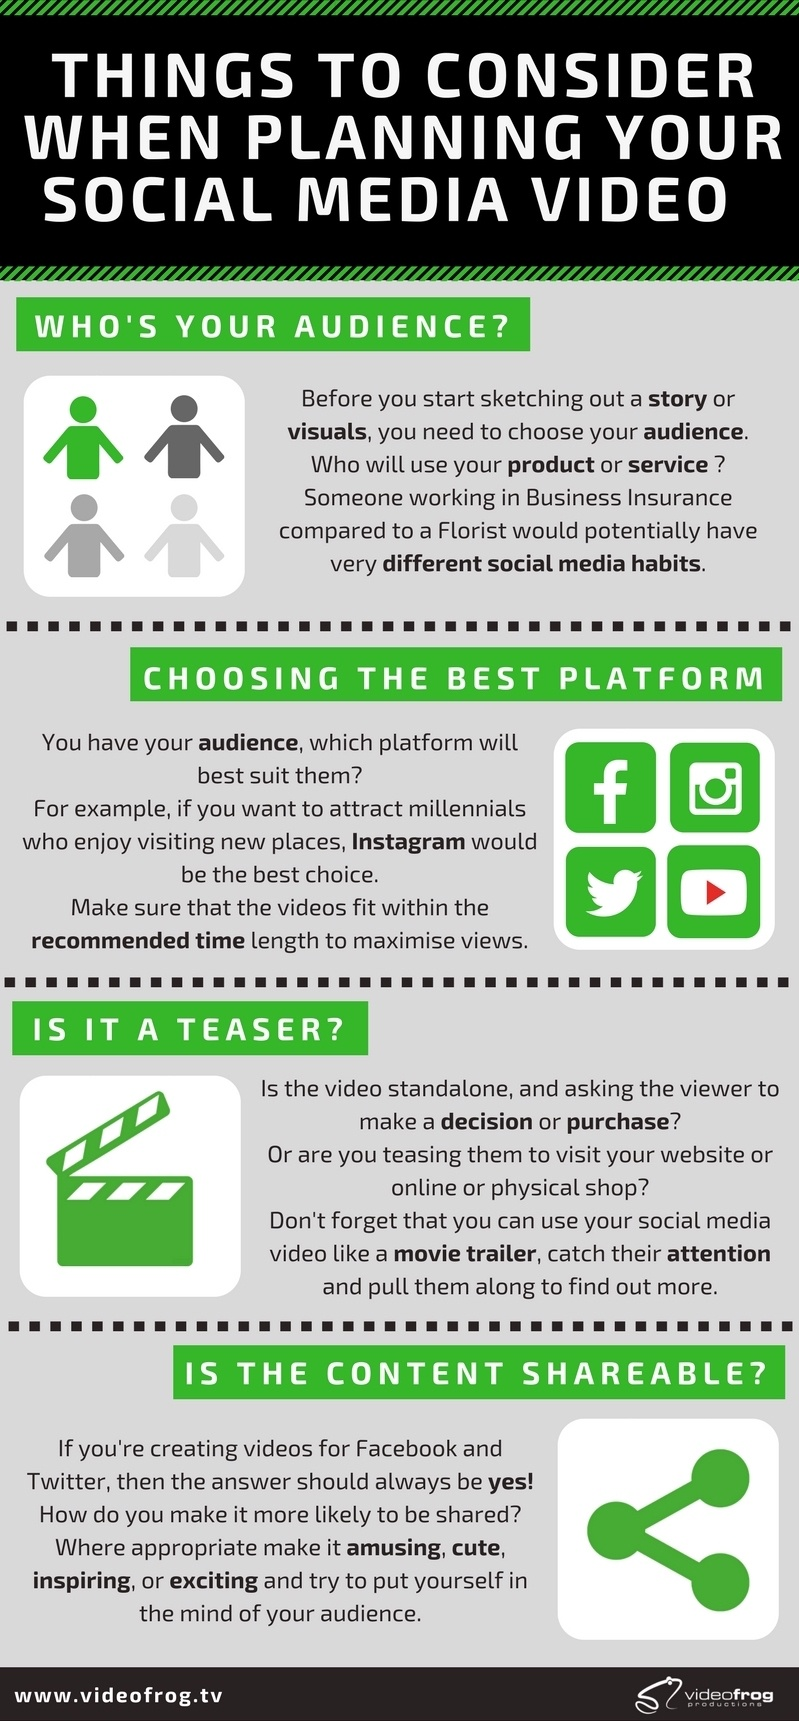 Important things to consider when planning your social media video productions